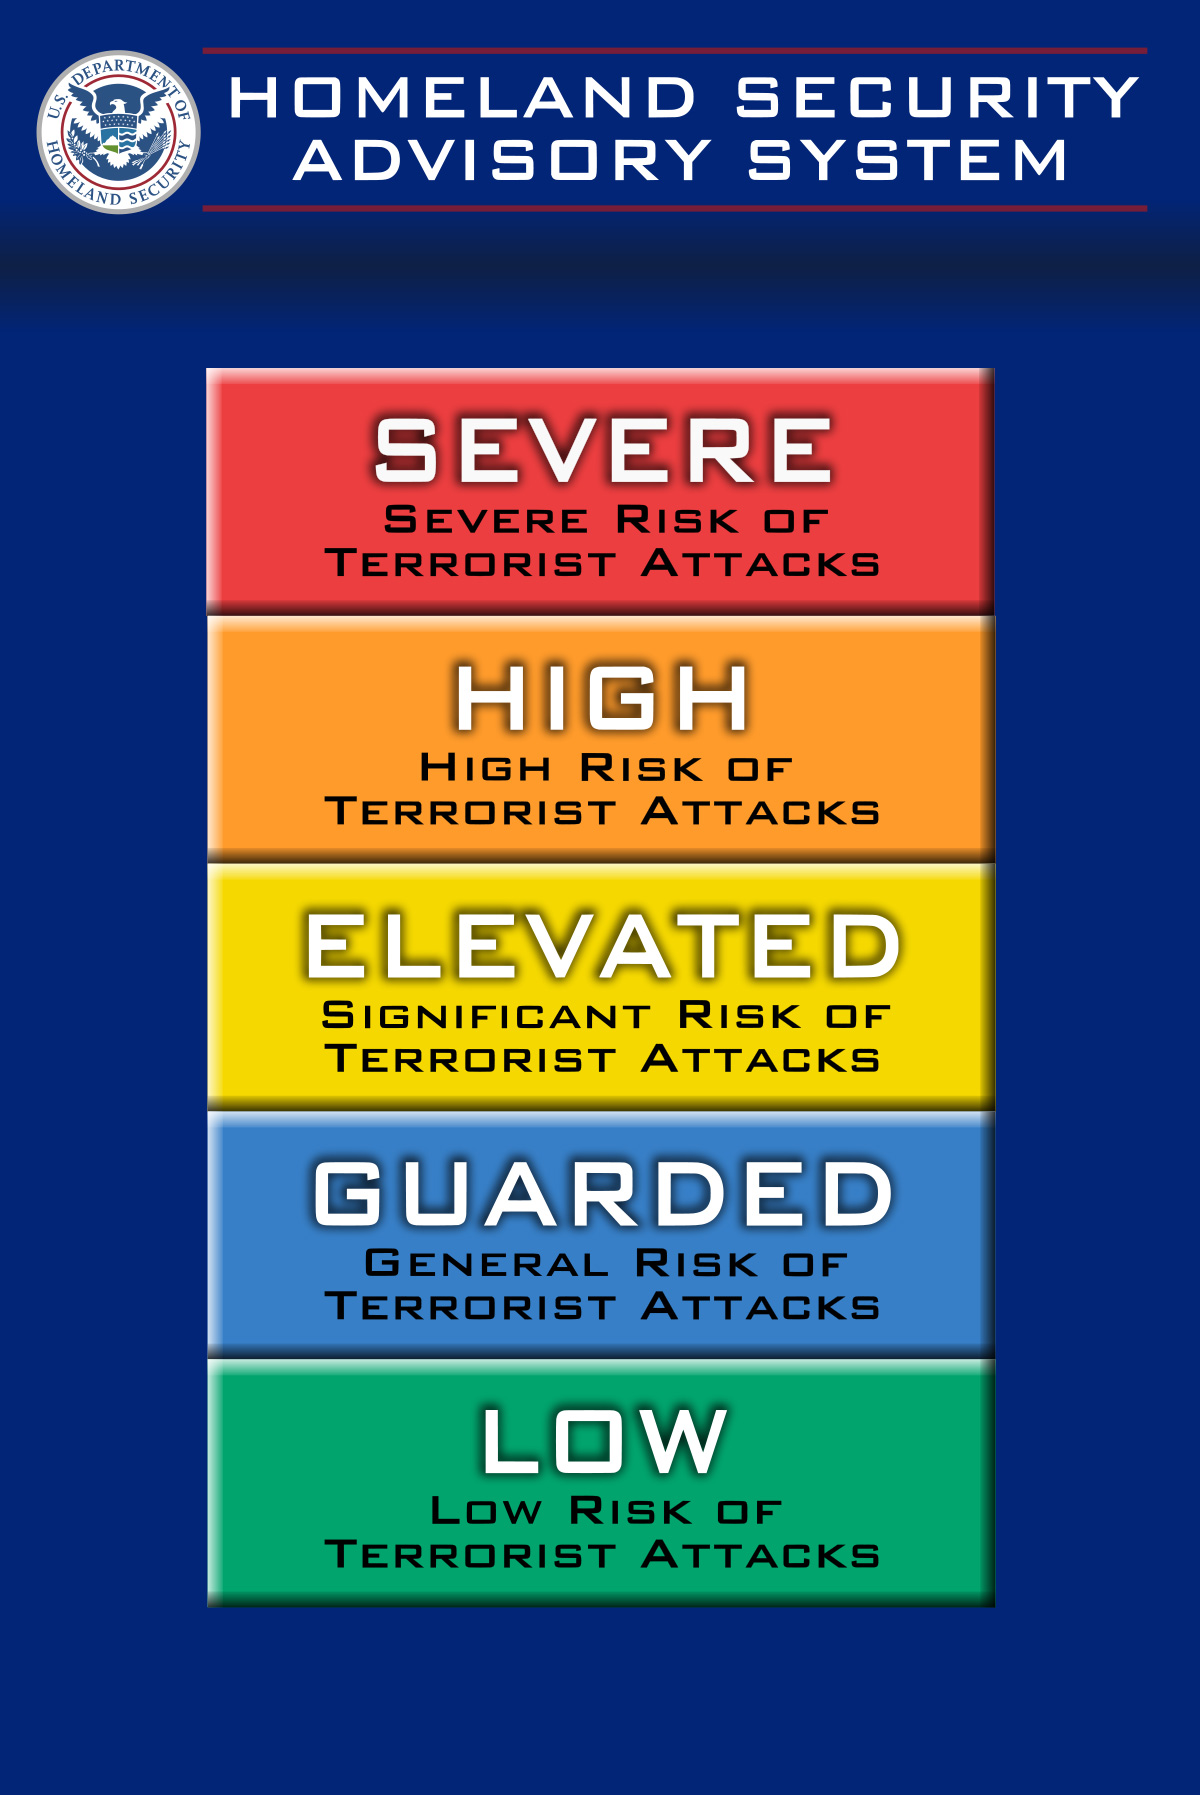 March 12, 2003 – This Is The Modern World – Terrorism And The Color Chart